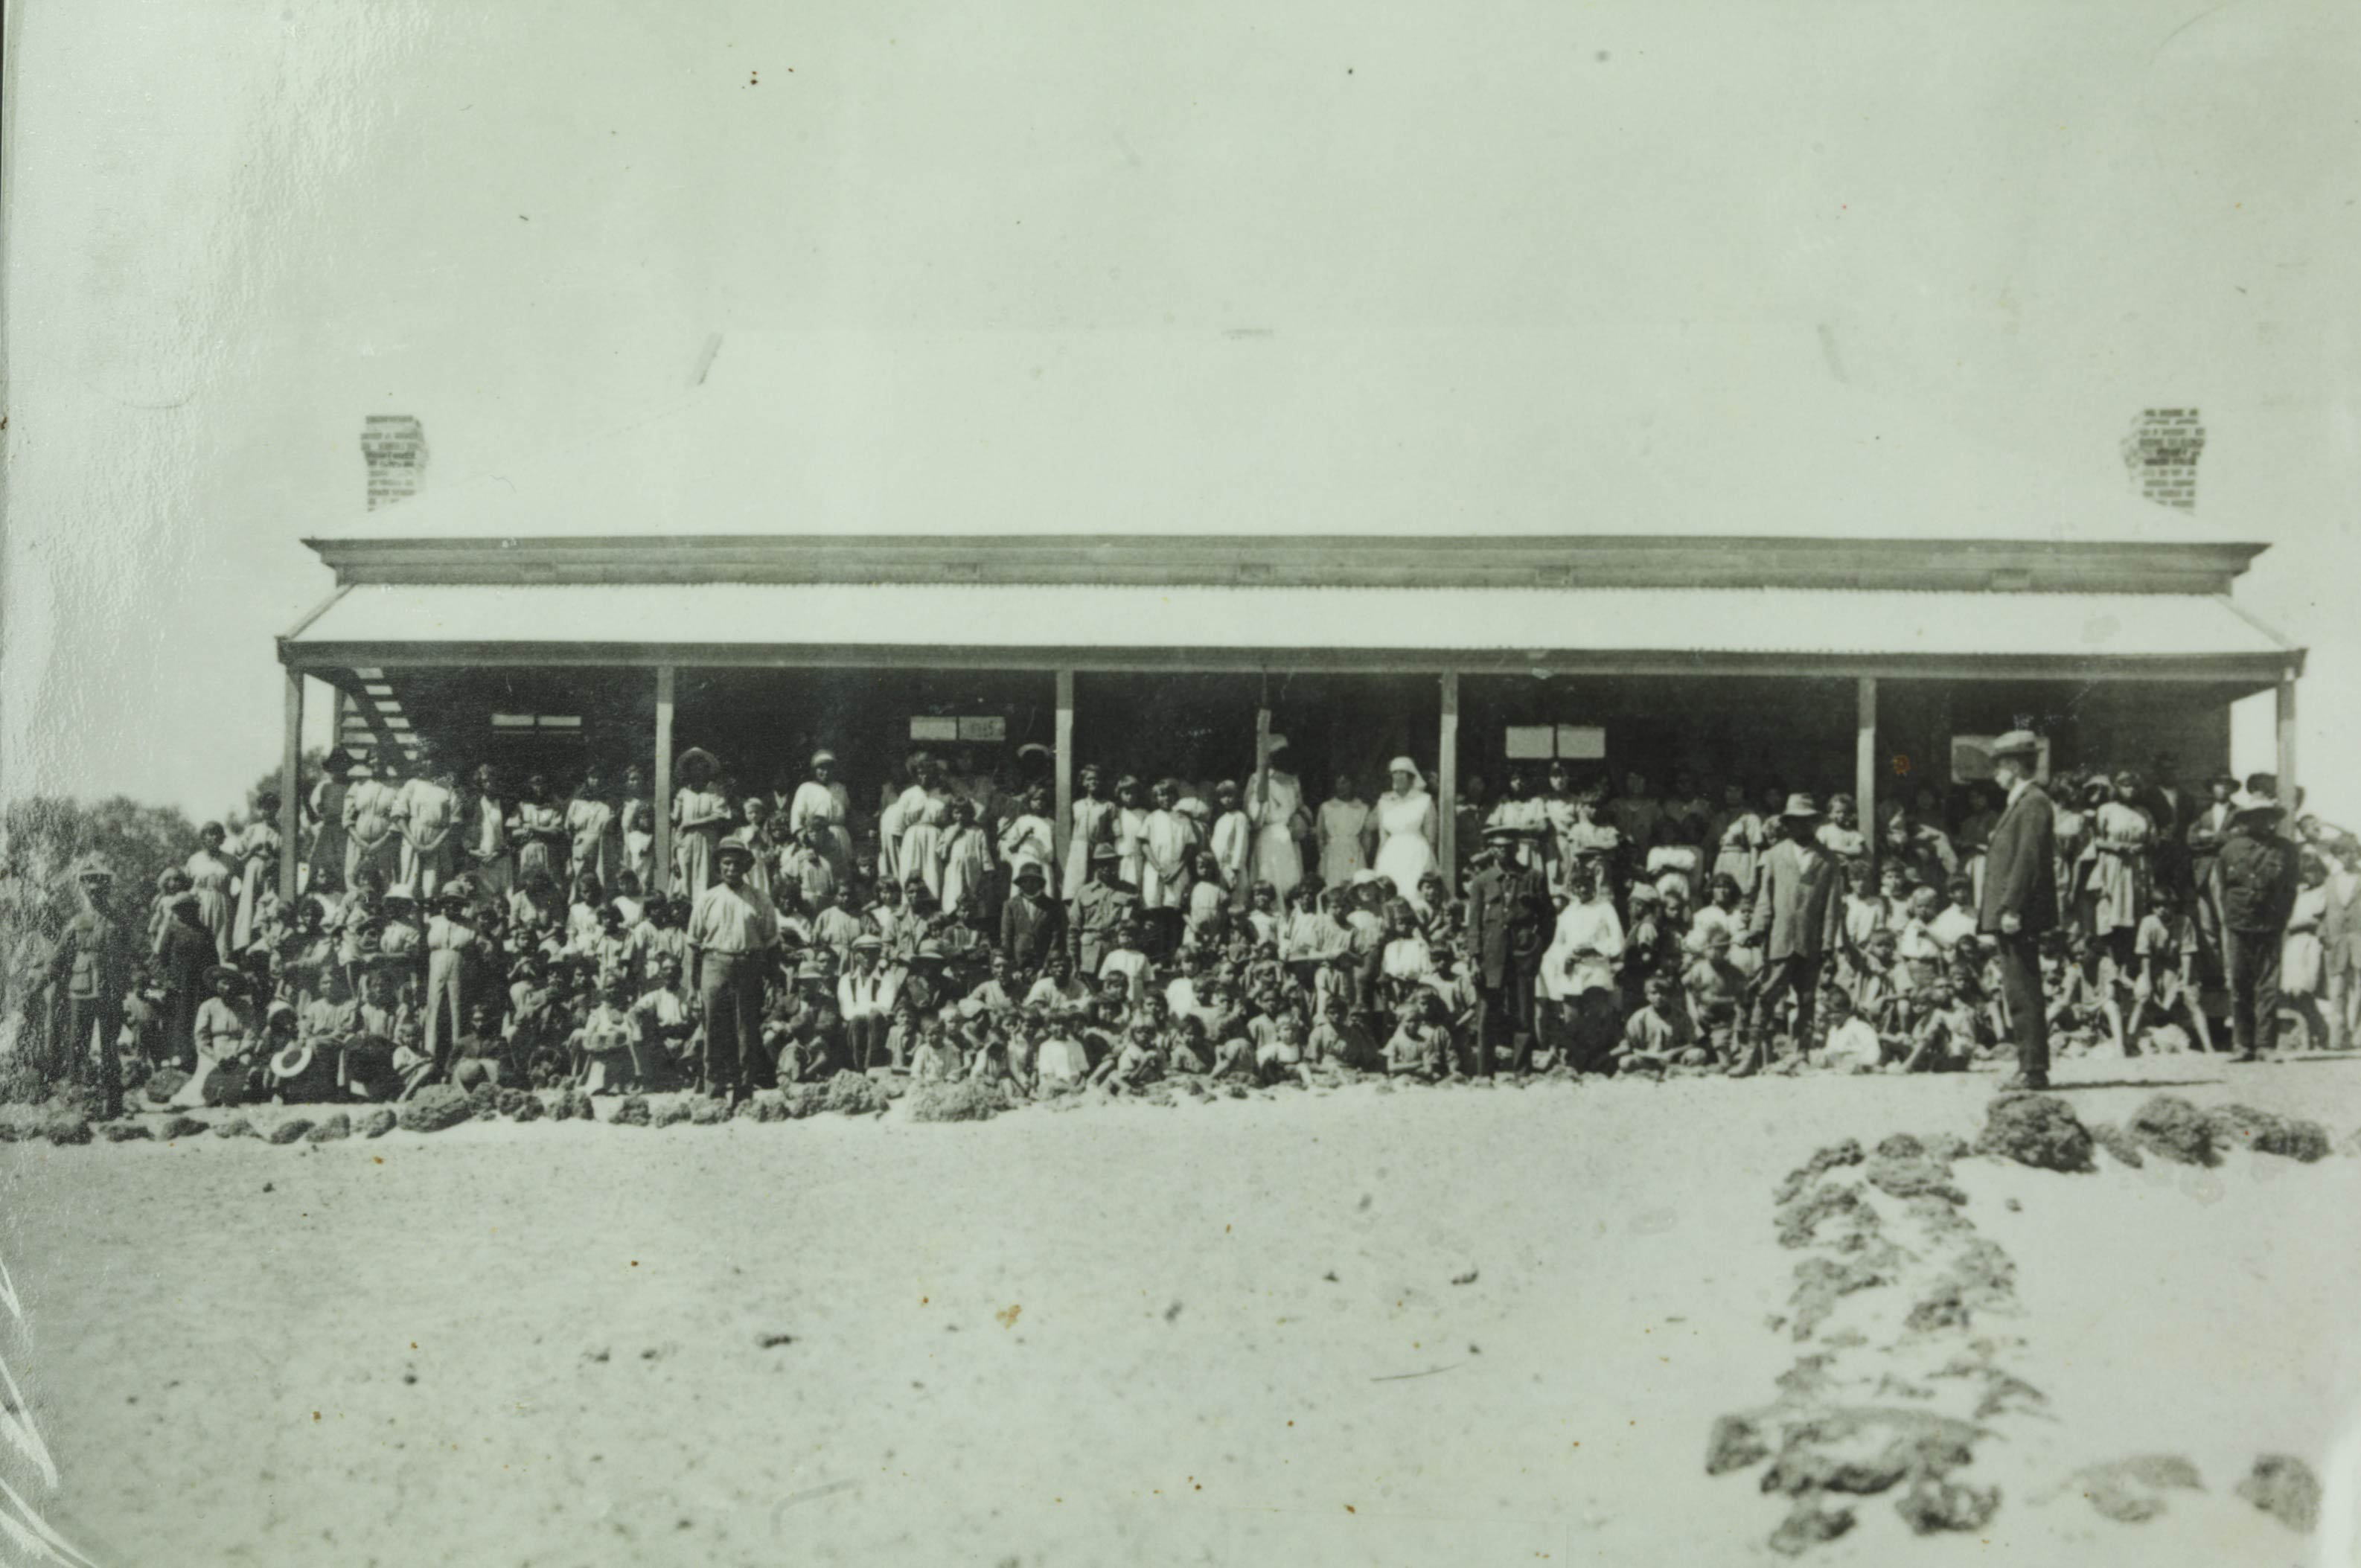 Histoic photo of the inmates at Moore River Native Settlement